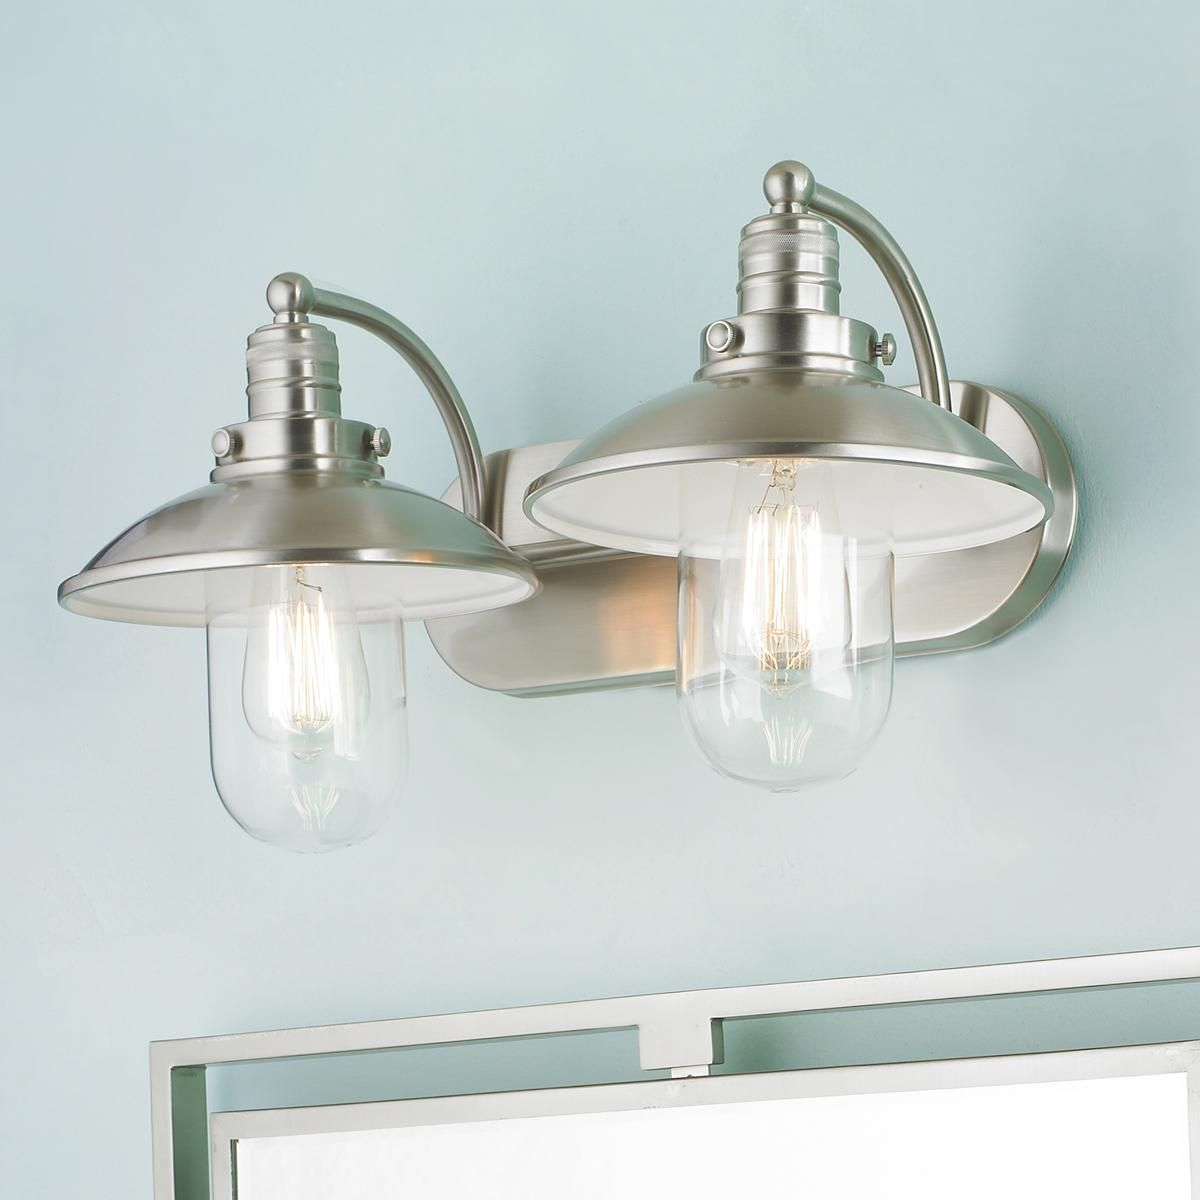 Industrial Style Bathroom Light Fixtures Schooner Bath Light 2 Light Bath Light Vanities And